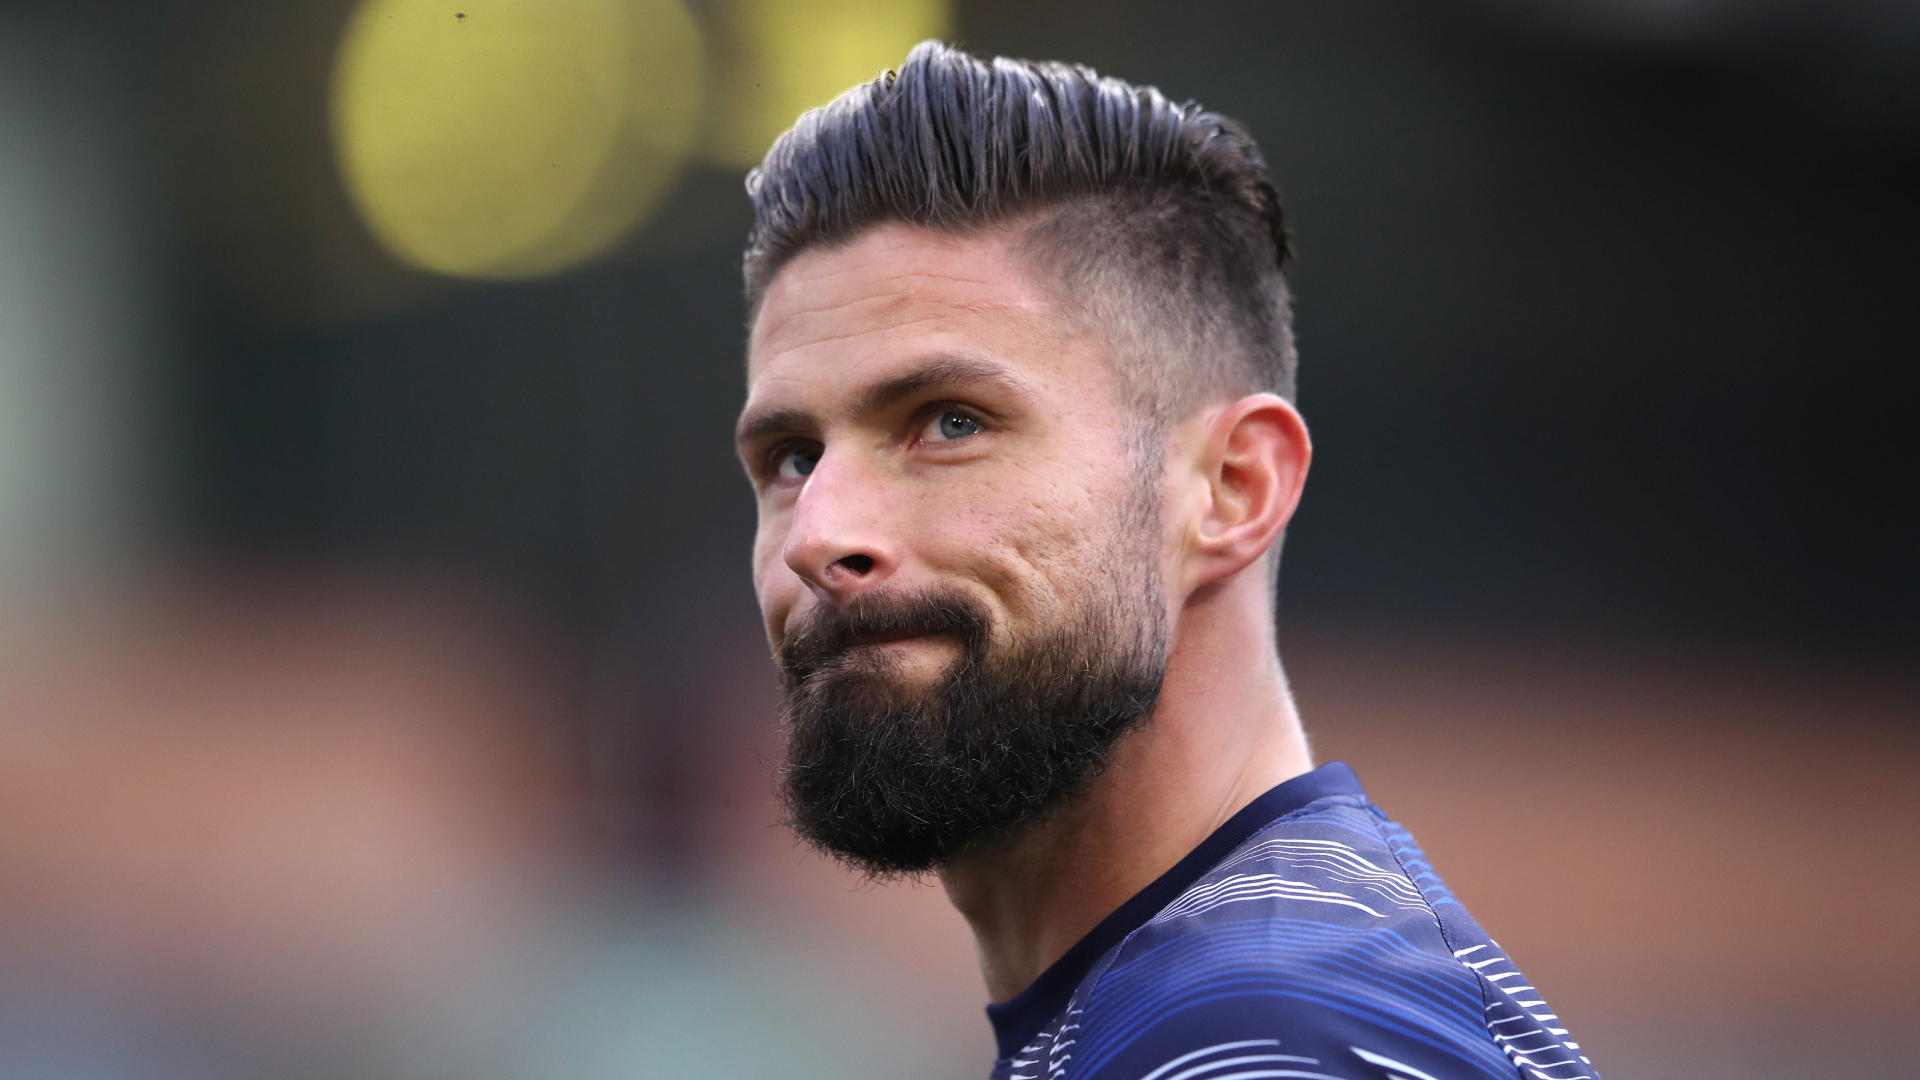 'My situation at Chelsea is worrying' - Giroud says he'll have to make a decision on his future in January